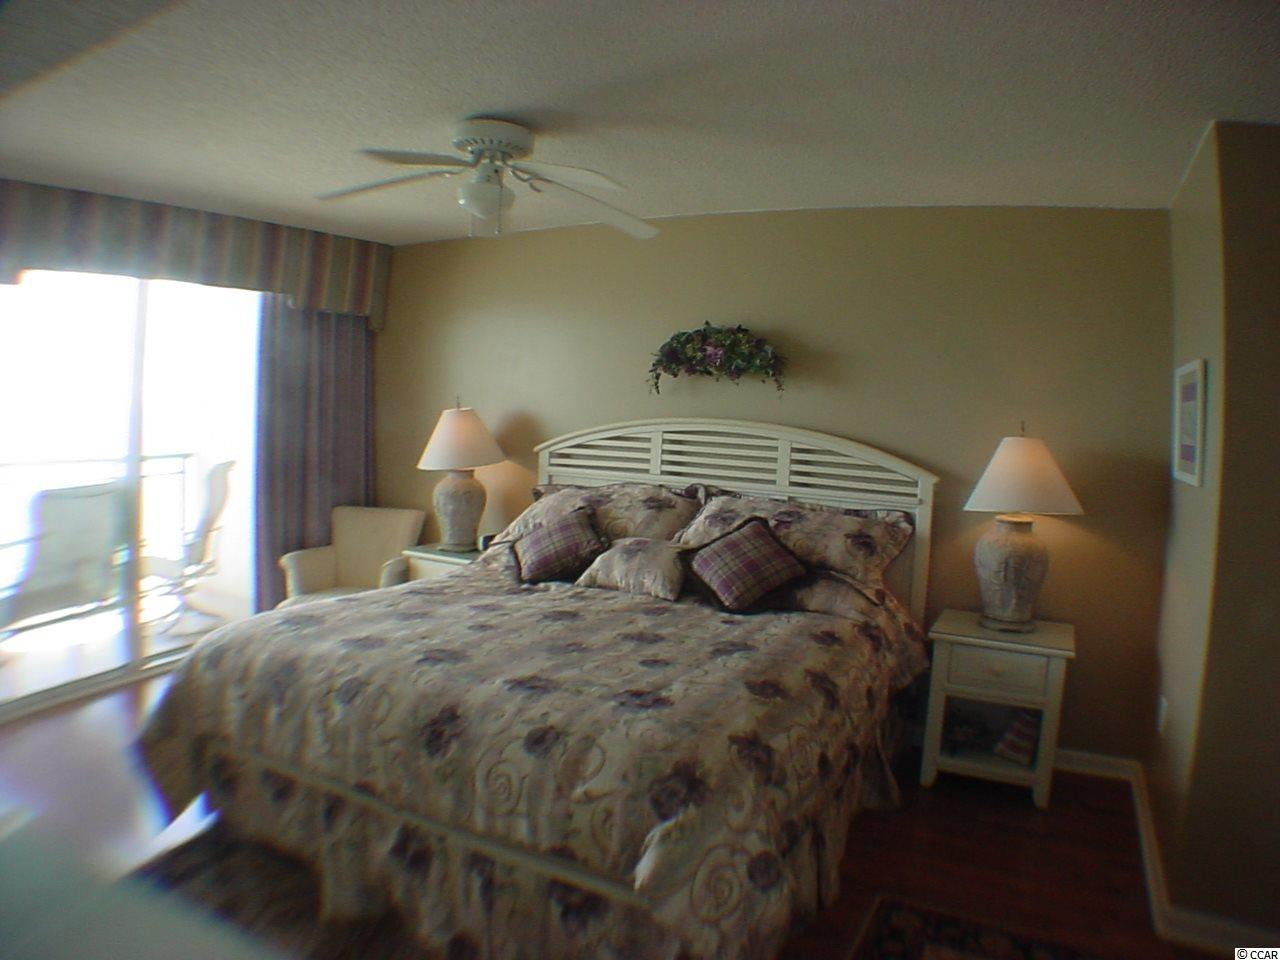 WINDY HILL DUNES condo at 3805 S OCEAN BLVD for sale. 1719447